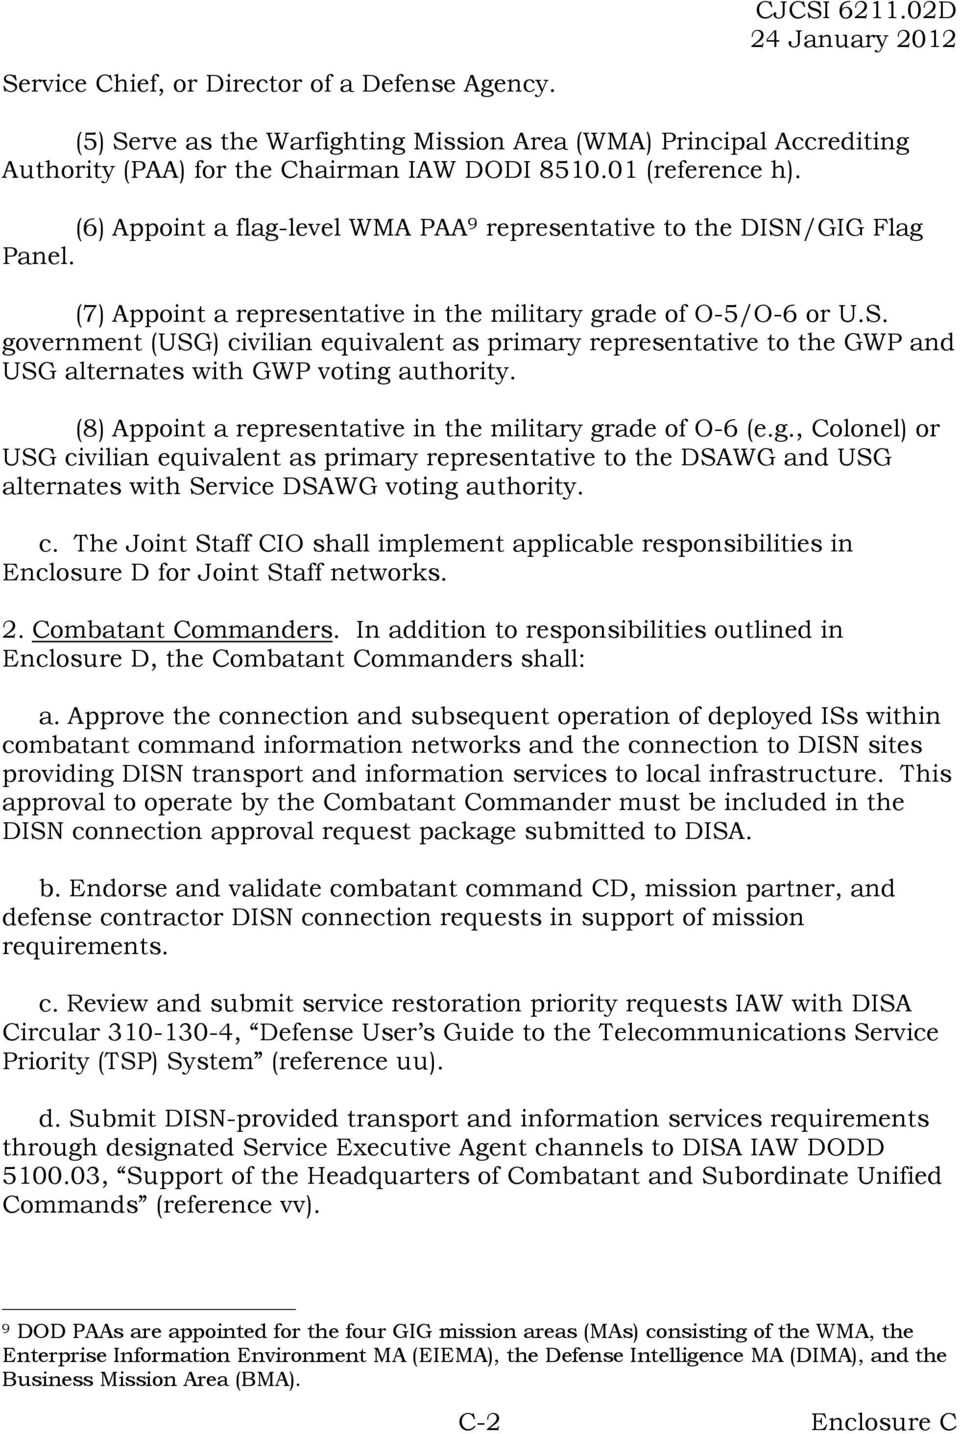 (8) Appoint a representative in the military grade of O-6 (e.g., Colonel) or USG civilian equivalent as primary representative to the DSAWG and USG alternates with Service DSAWG voting authority. c. The Joint Staff CIO shall implement applicable responsibilities in Enclosure D for Joint Staff networks.